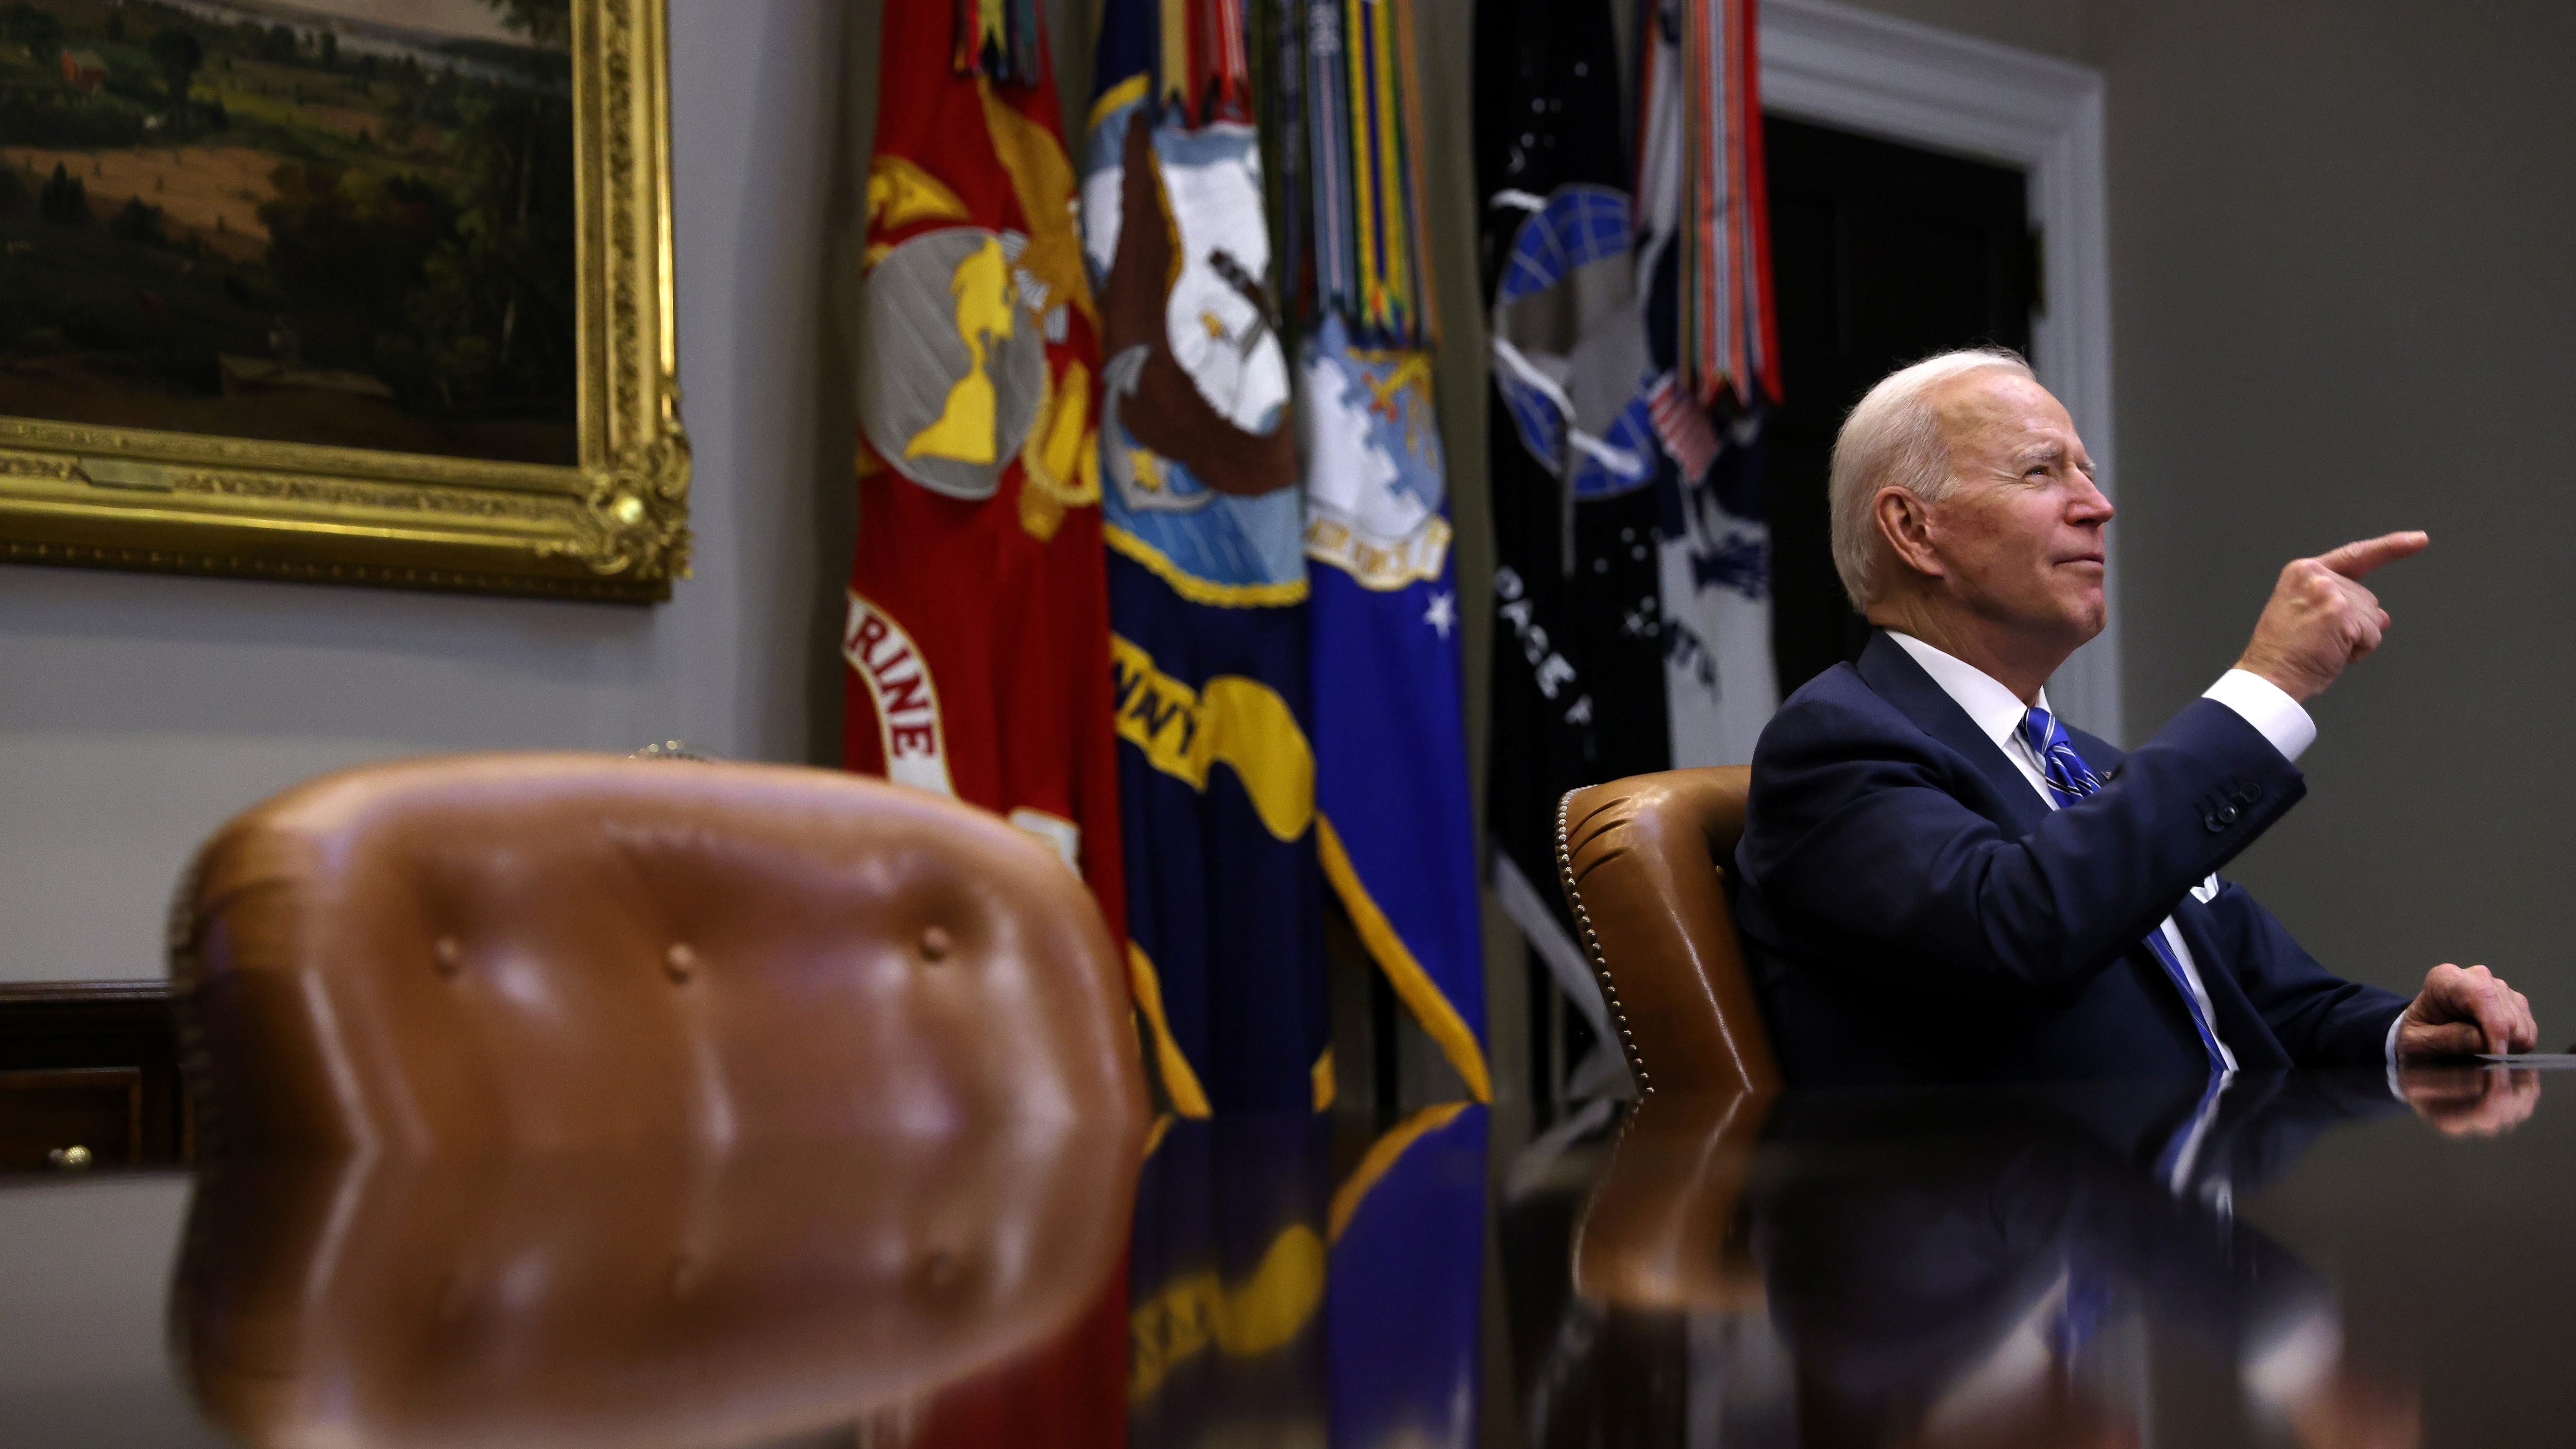 US president Joe Biden sits at a conference table and points.